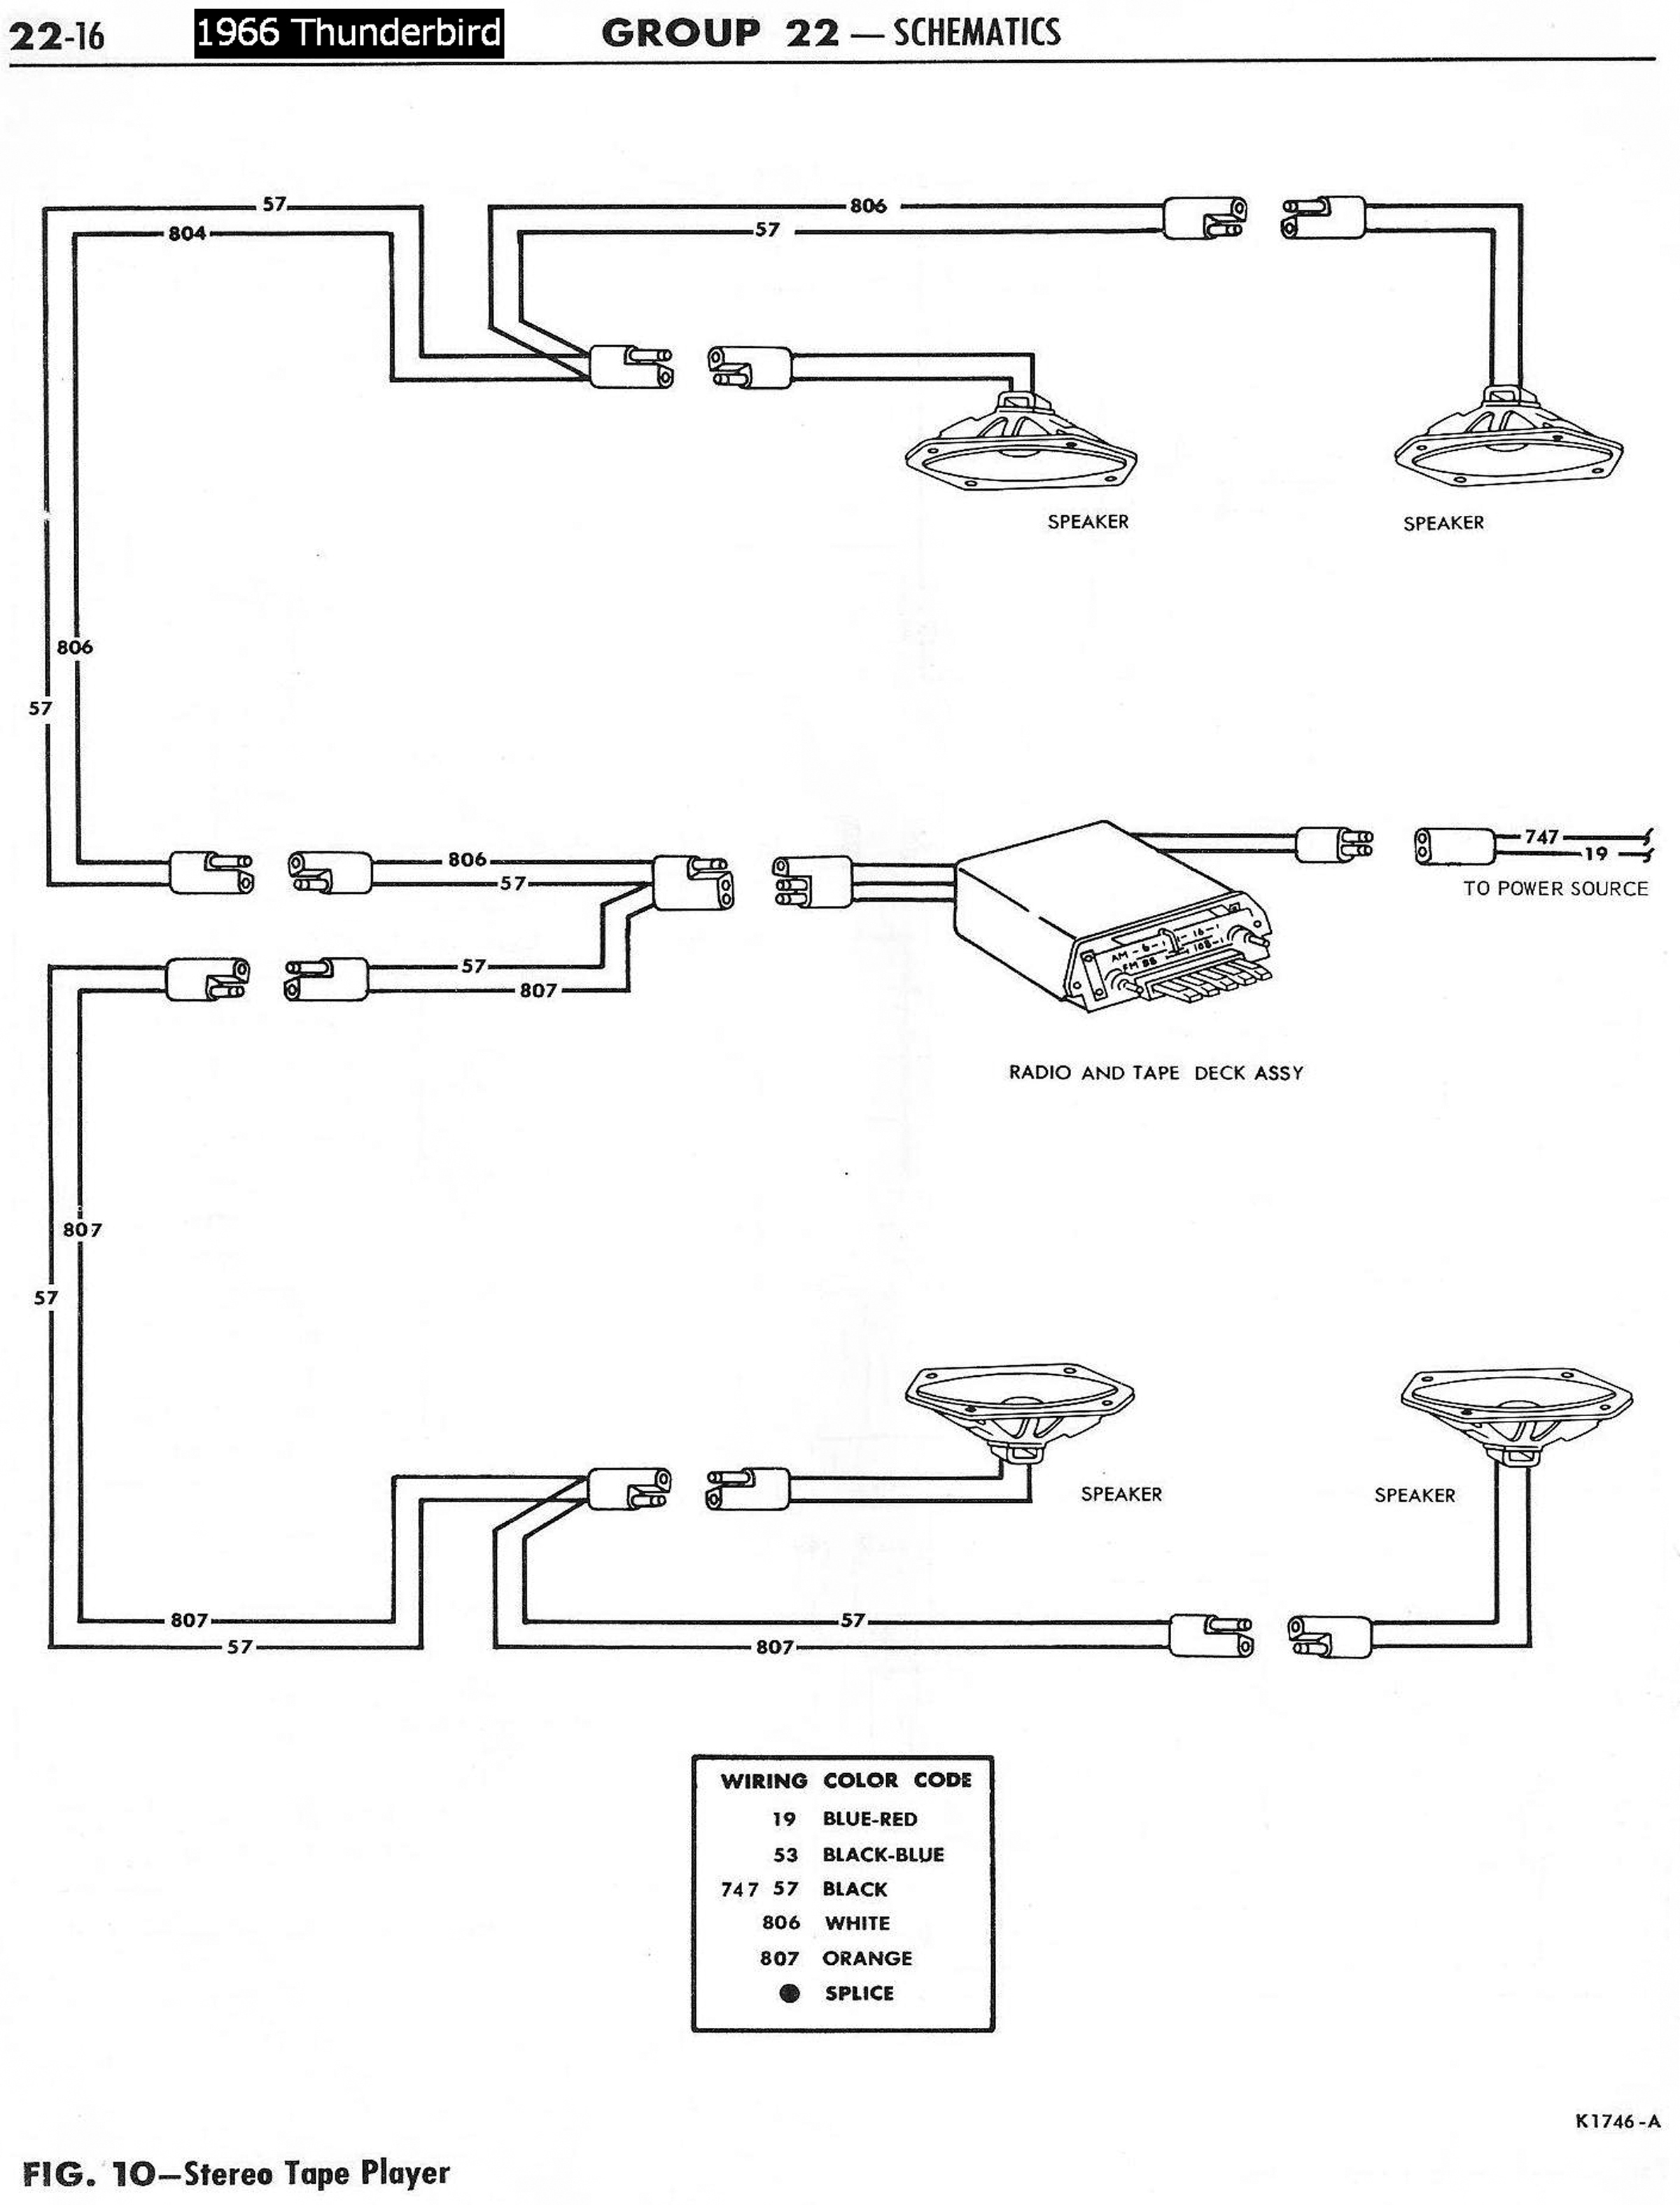 66 mustang radio wiring diagram stihl fs 76 parts 1958 68 ford electrical schematics